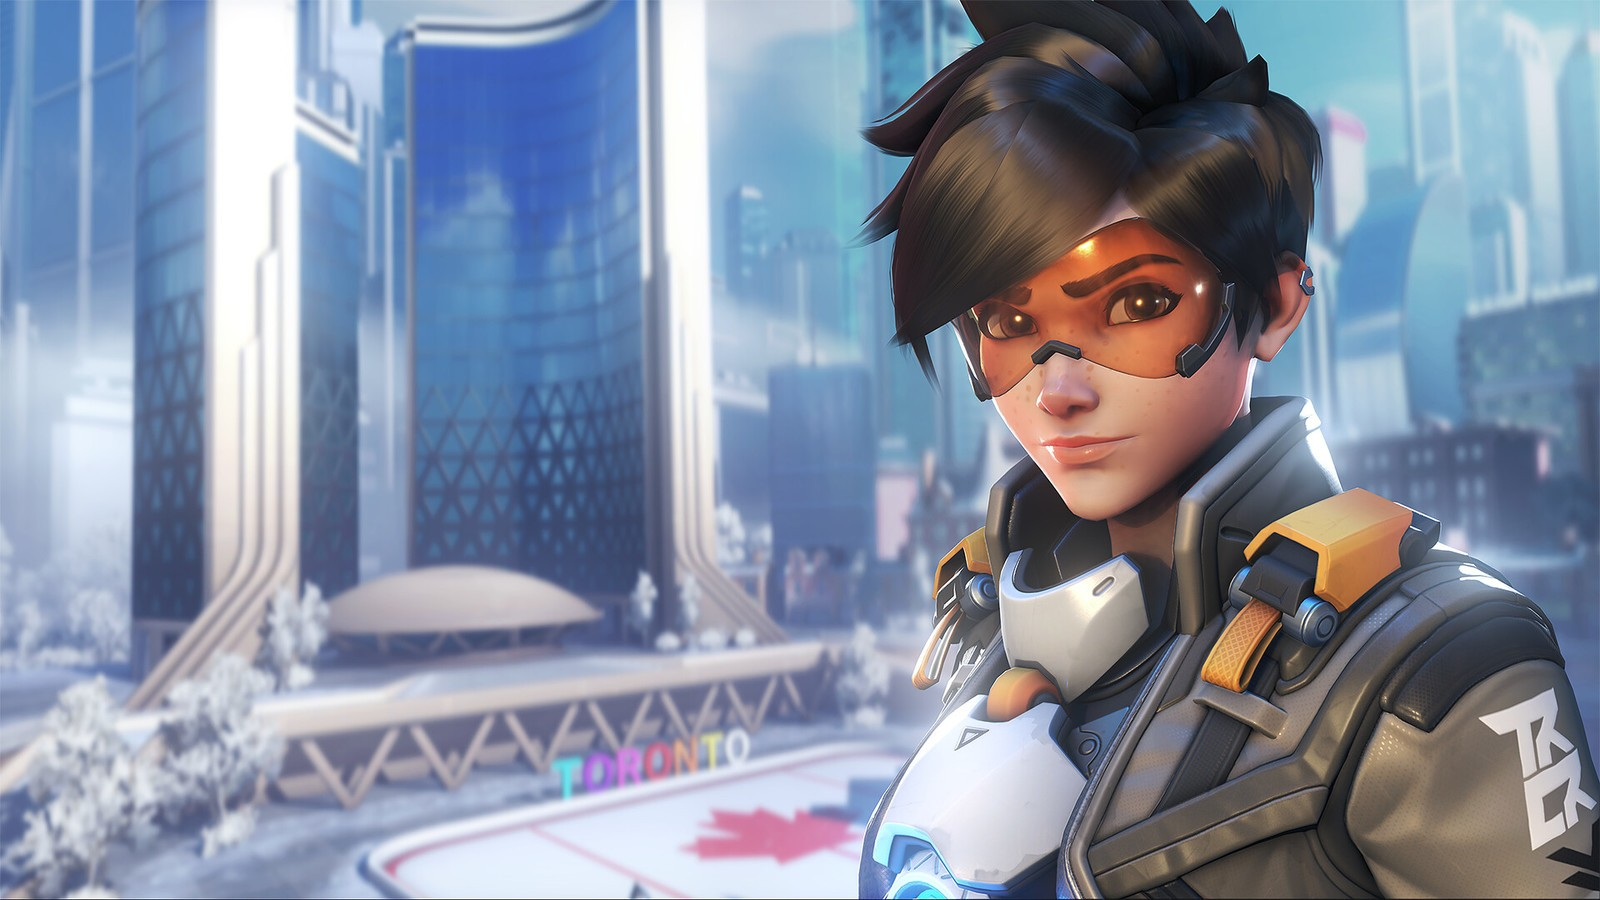 5v5 in Overwatch 2: A Prospective Look Forward